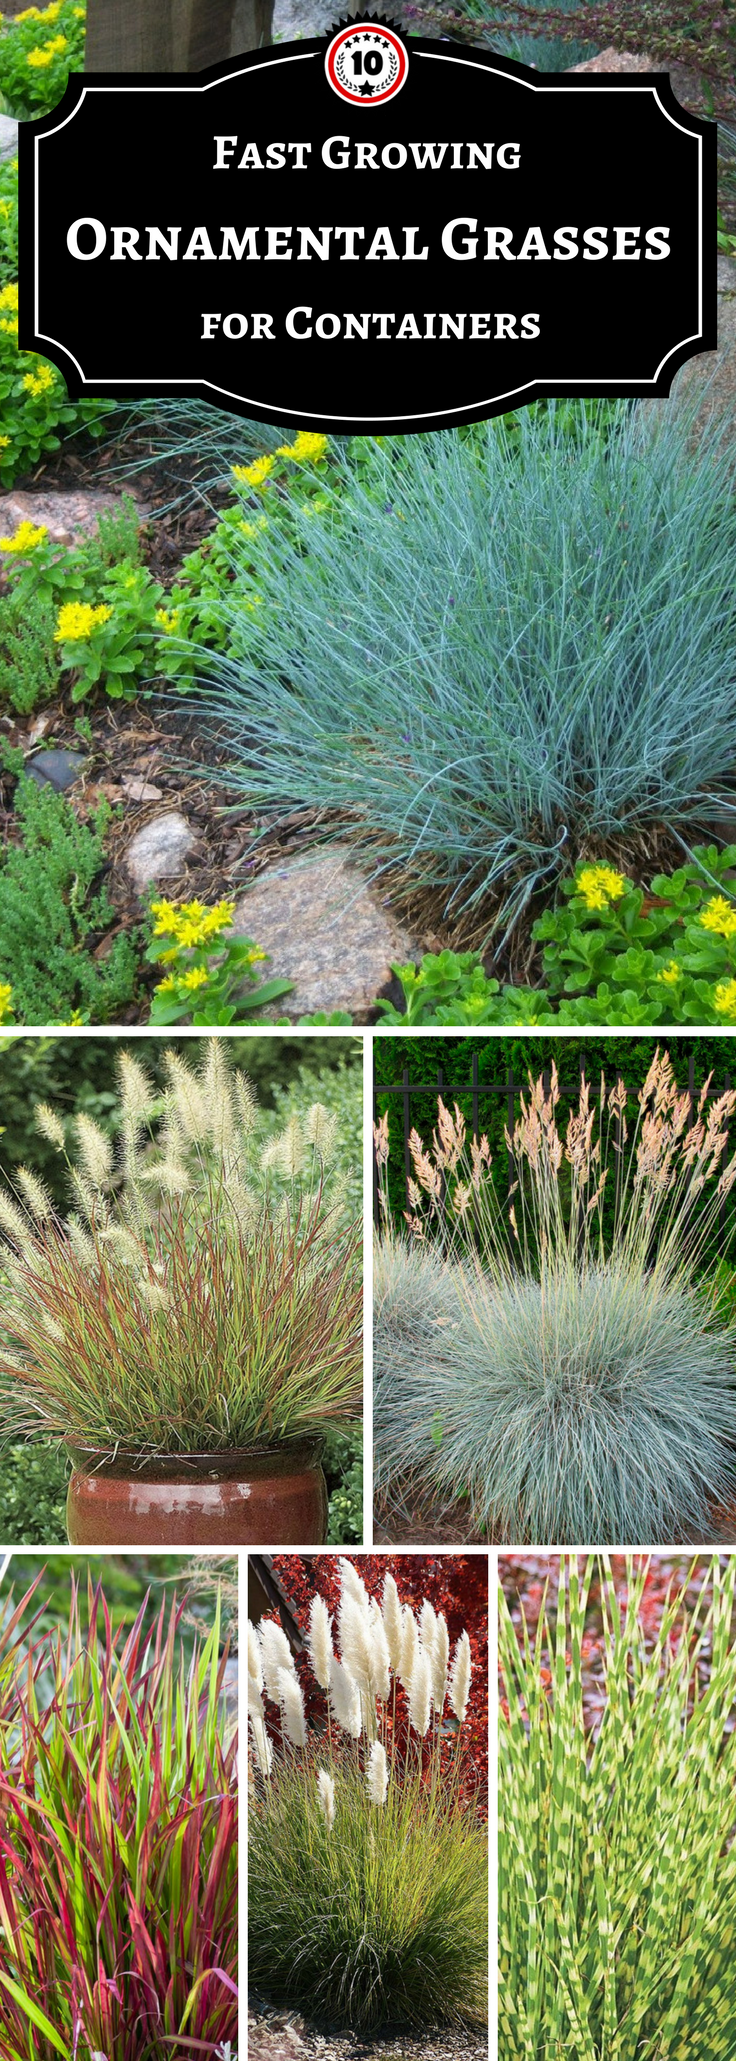 Ornamental Grasses In Containers Top 10 ornamental grasses for containers grasses gardens and plants one of the best ways you can decorate any container in your garden is by adding a ornamental grass in it this kind of grass will be a fascinating display workwithnaturefo